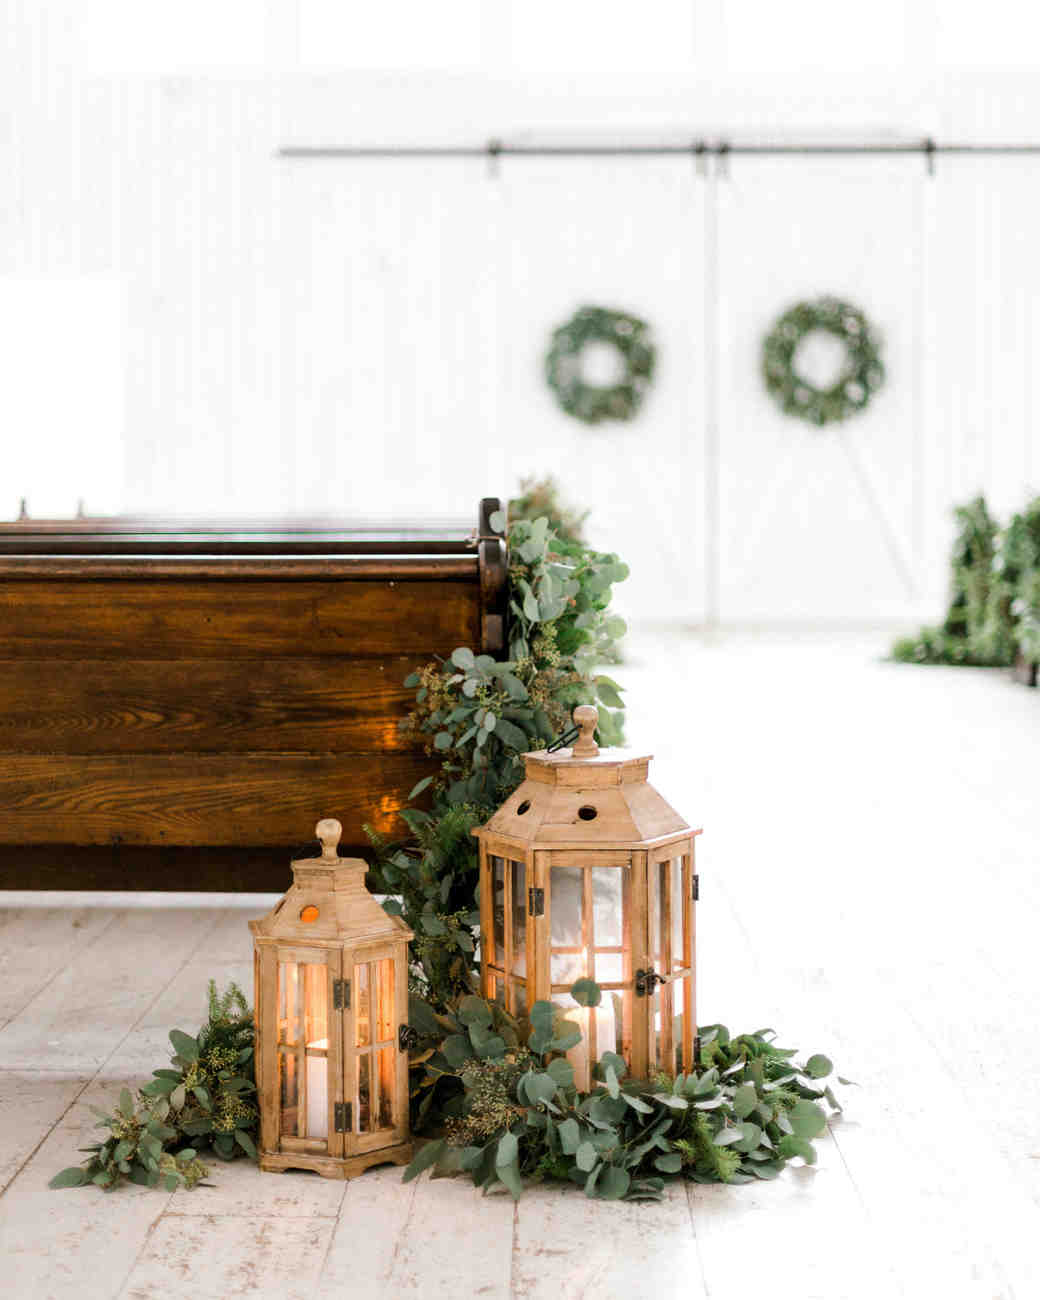 Country Wedding Ideas: 26 Rustic Wedding Ideas That Still Feel Elevated